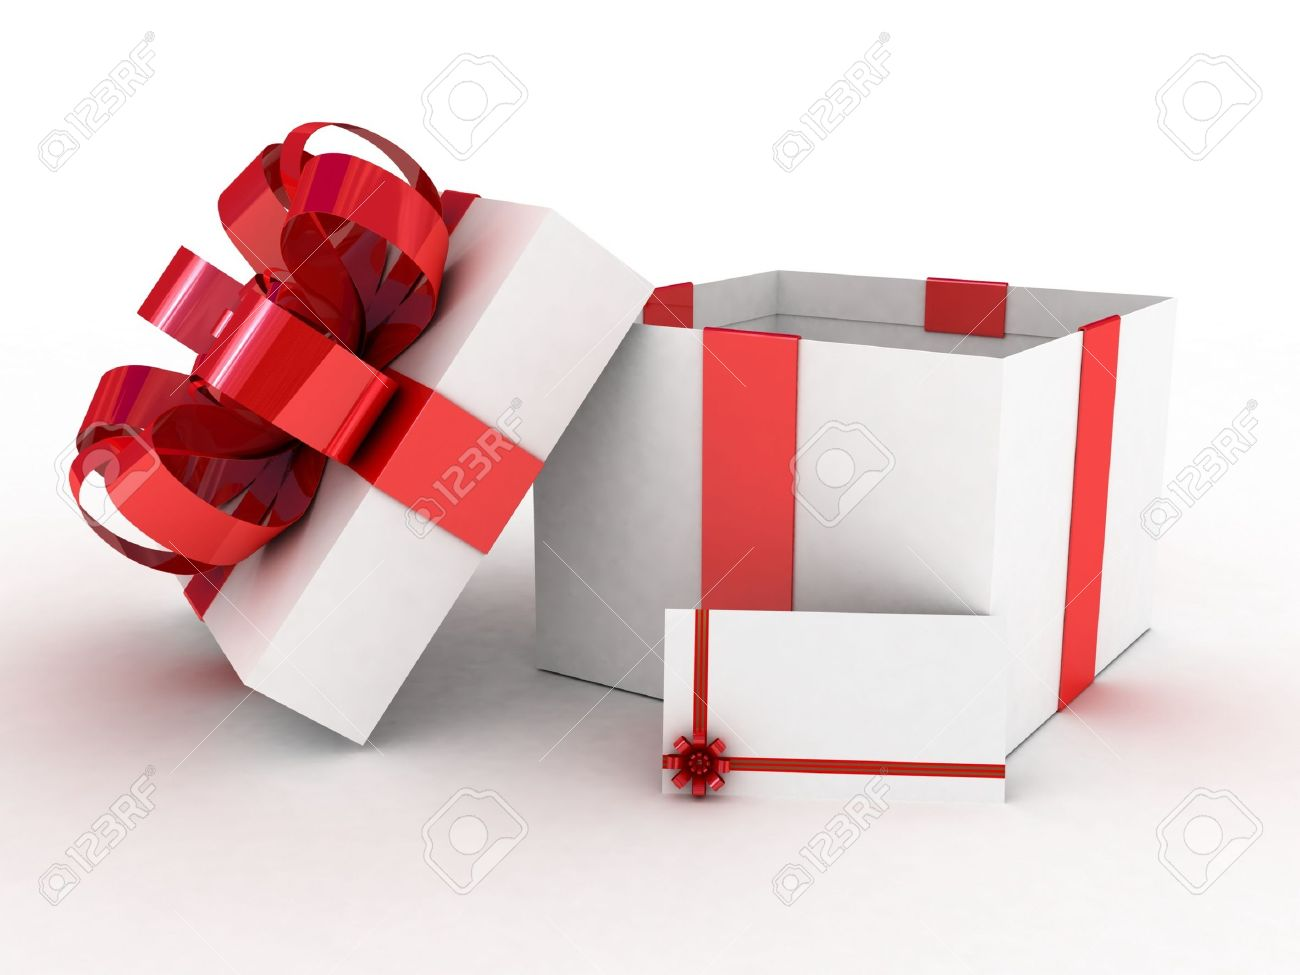 Gift Open White Box, 3D Images Stock Photo, Picture And Royalty ...